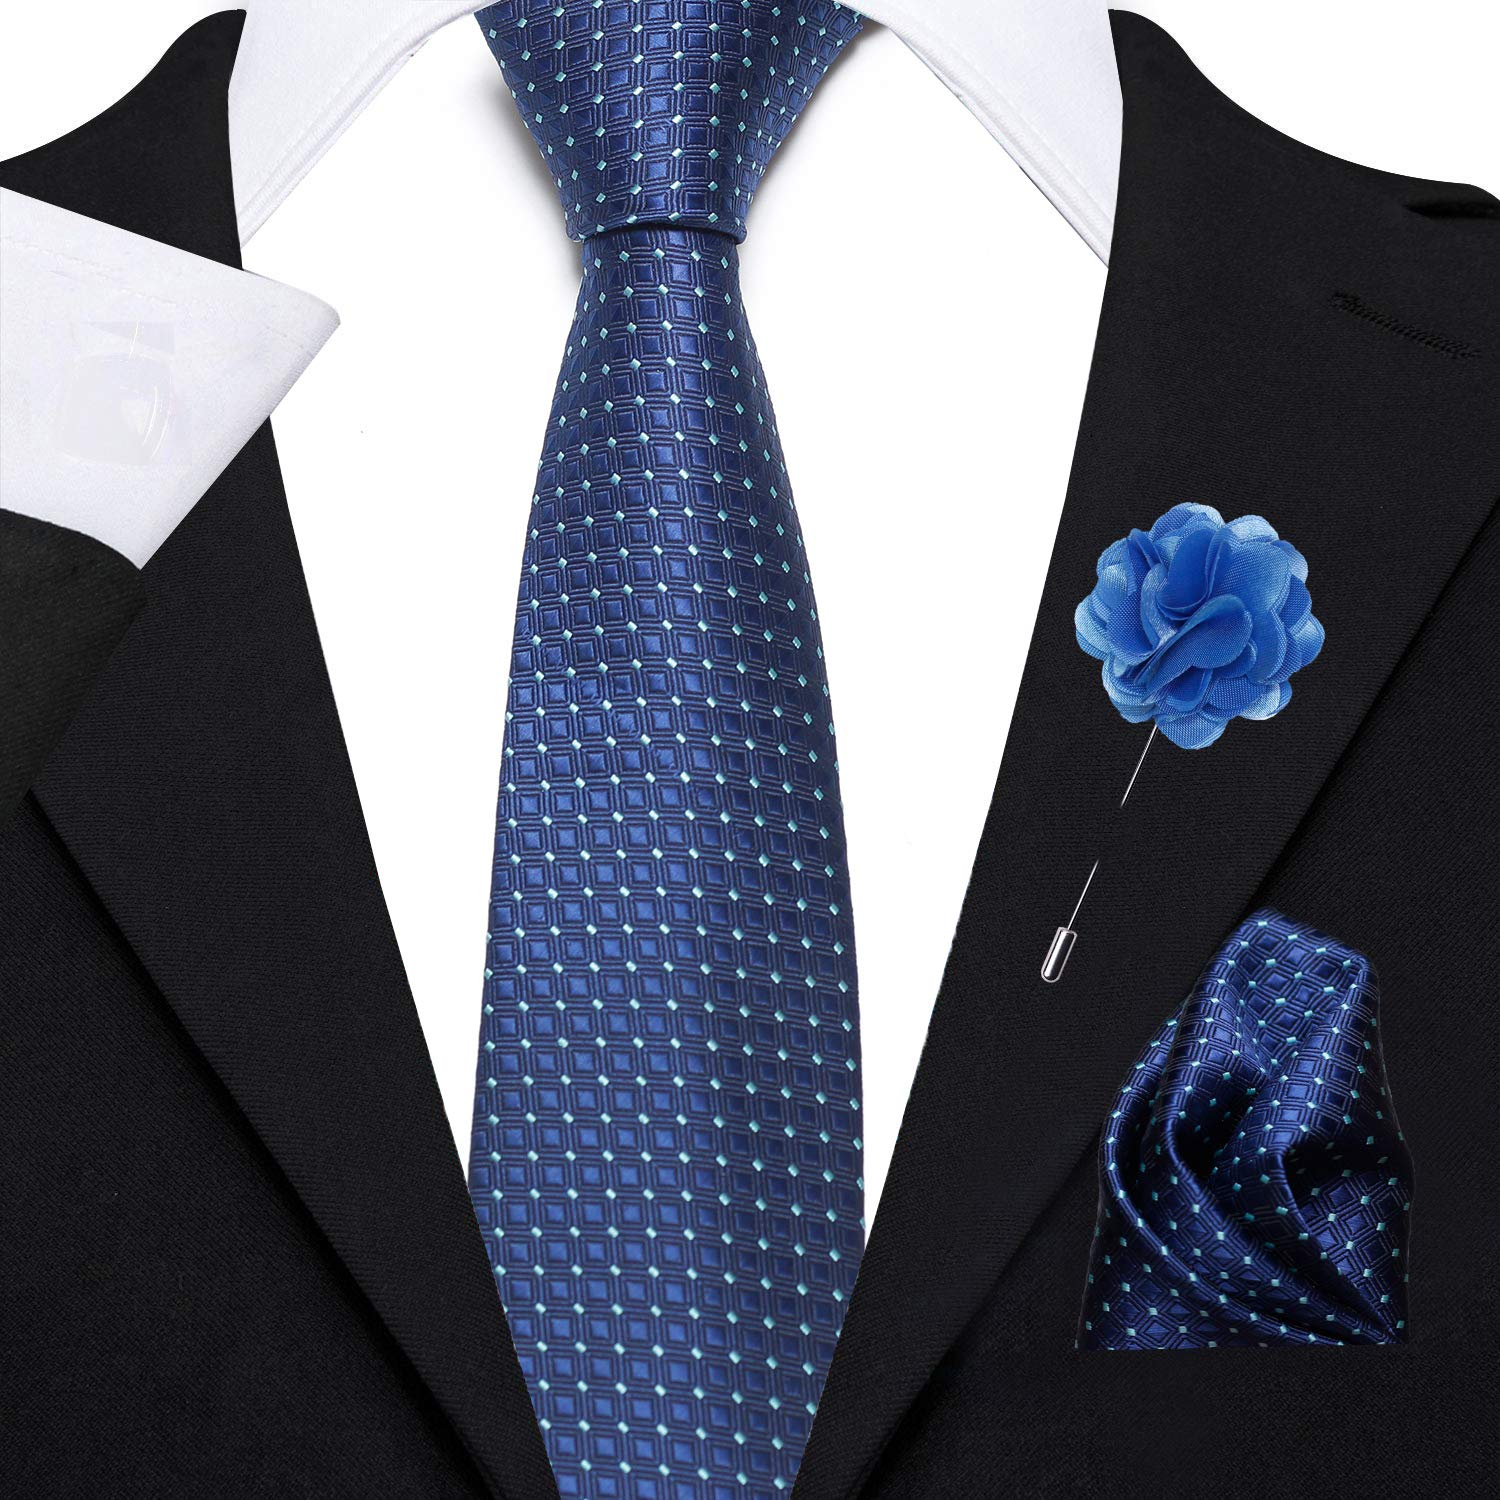 Axlon Men's Micro Polyester Necktie Set with Pocket Square and Lapel Pin (Blue, Free Size)